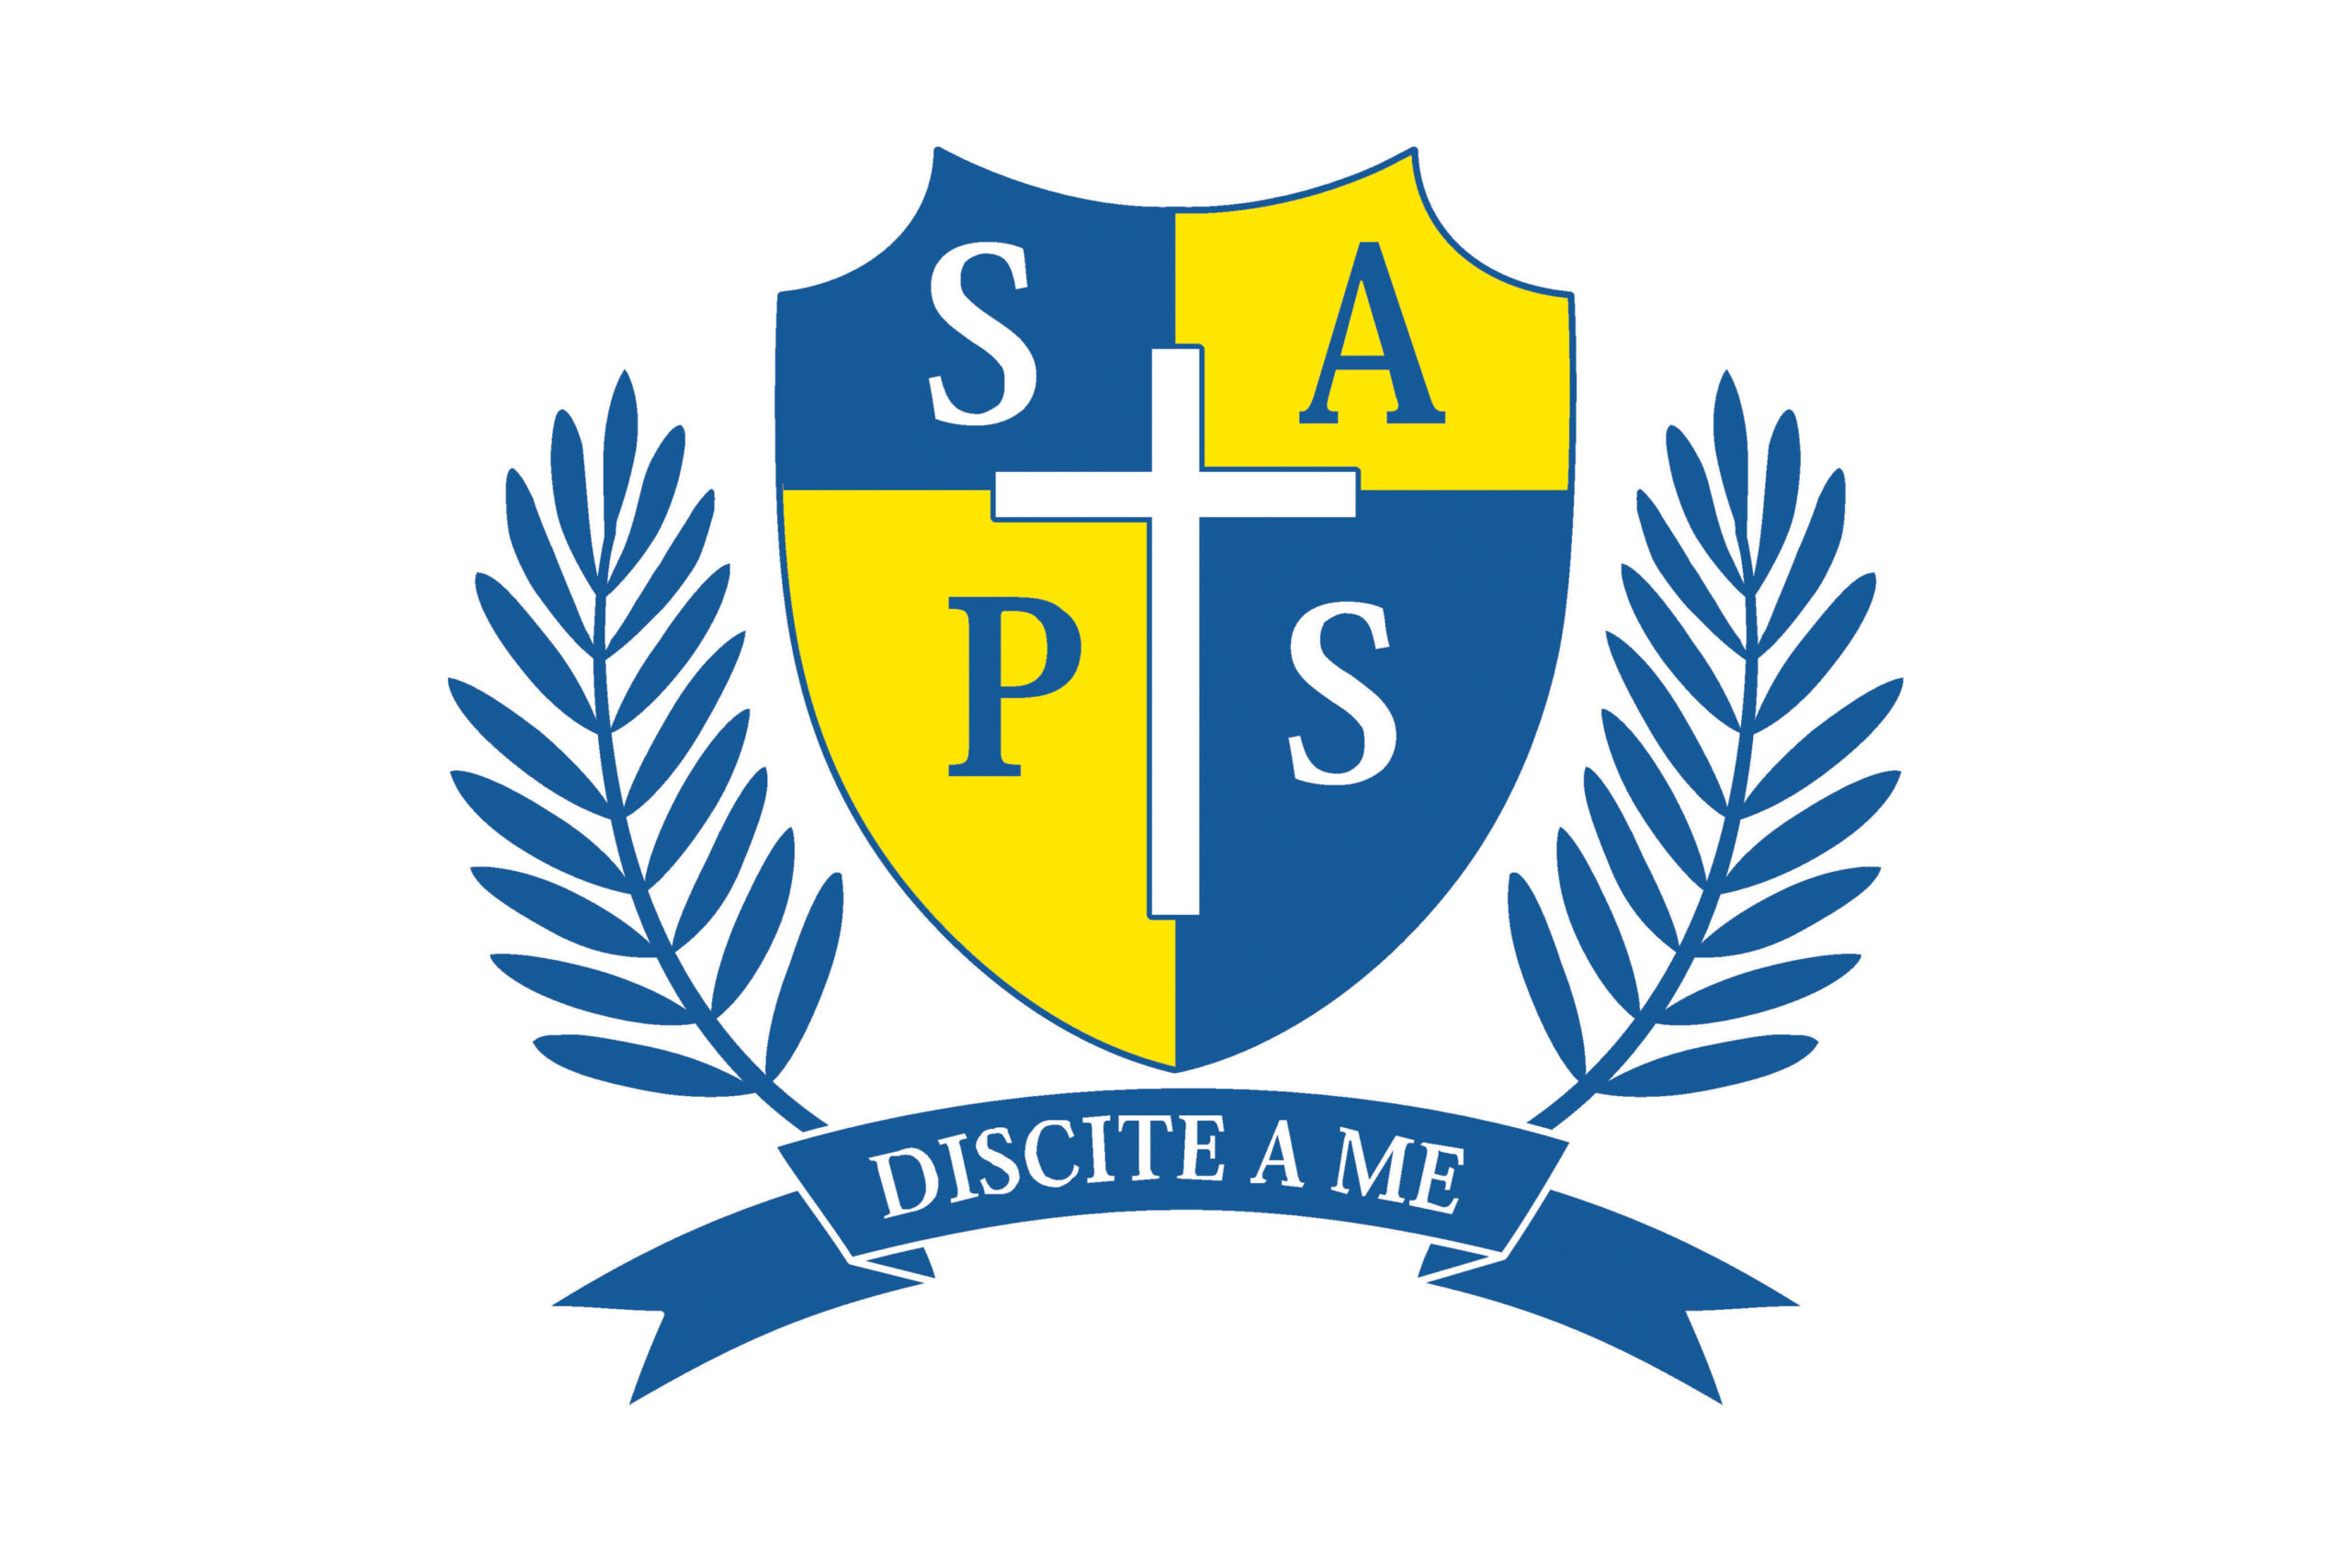 https://secureservercdn.net/198.71.233.138/28p.fa3.myftpupload.com/wp-content/uploads/2020/04/school-logo-2-scaled.jpg